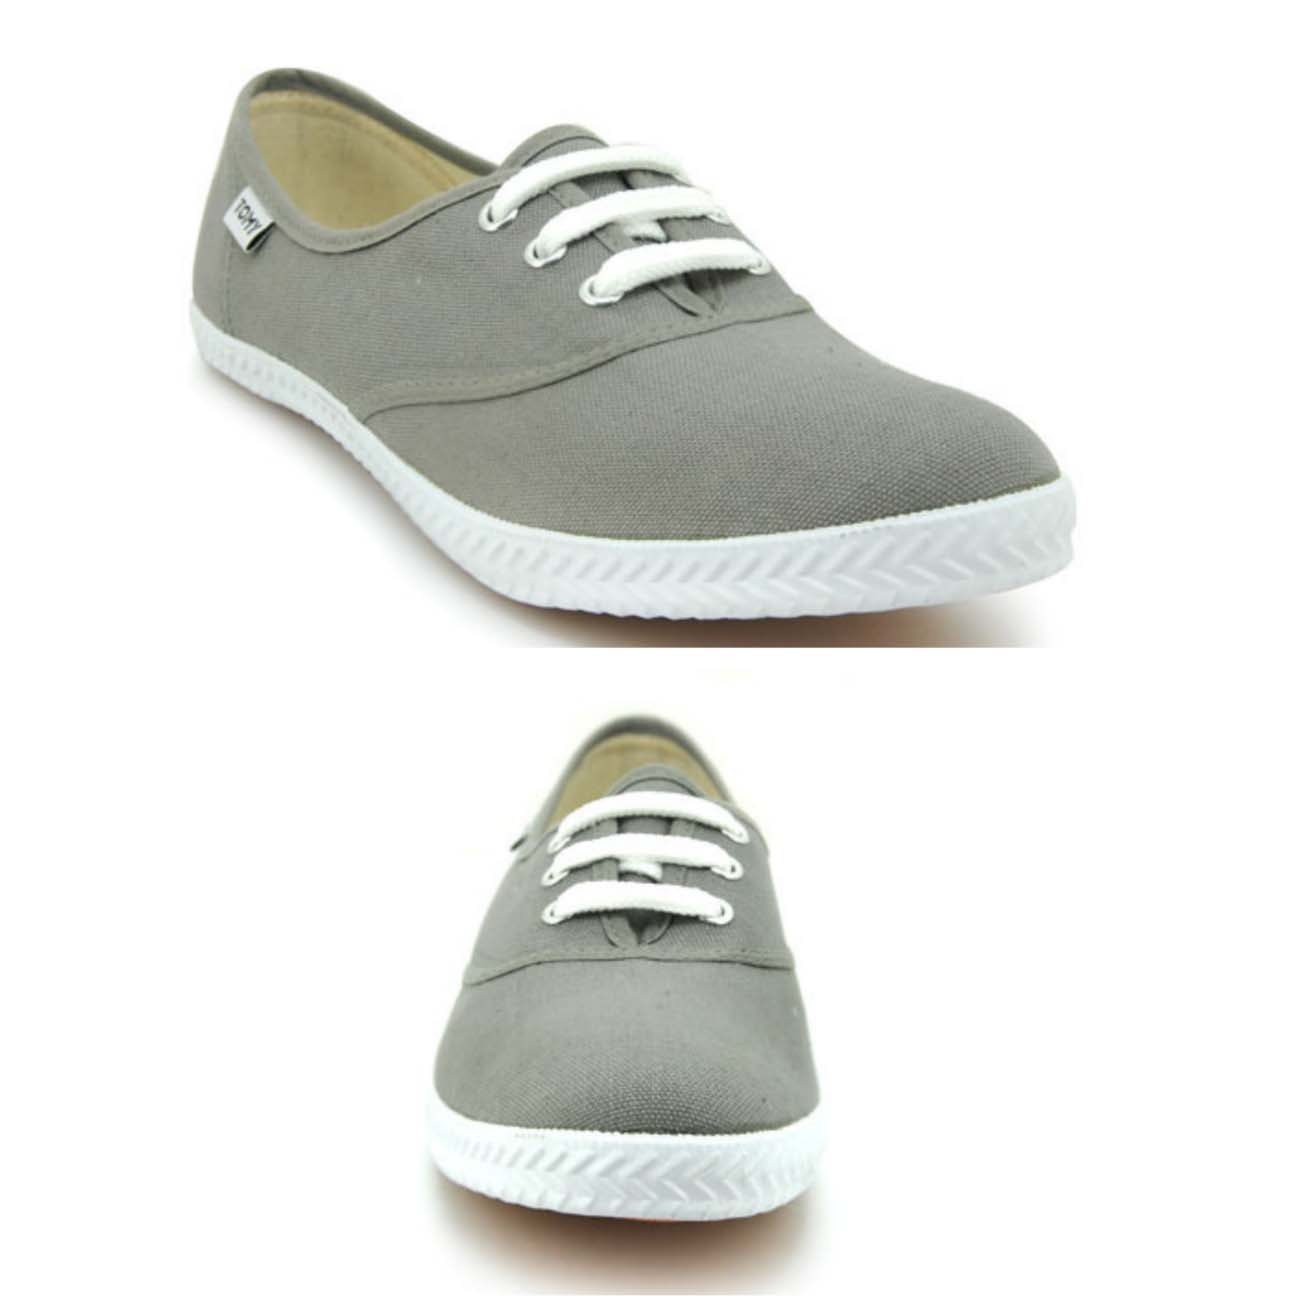 best athletic and casual shoes by bata 2016 stylo planet